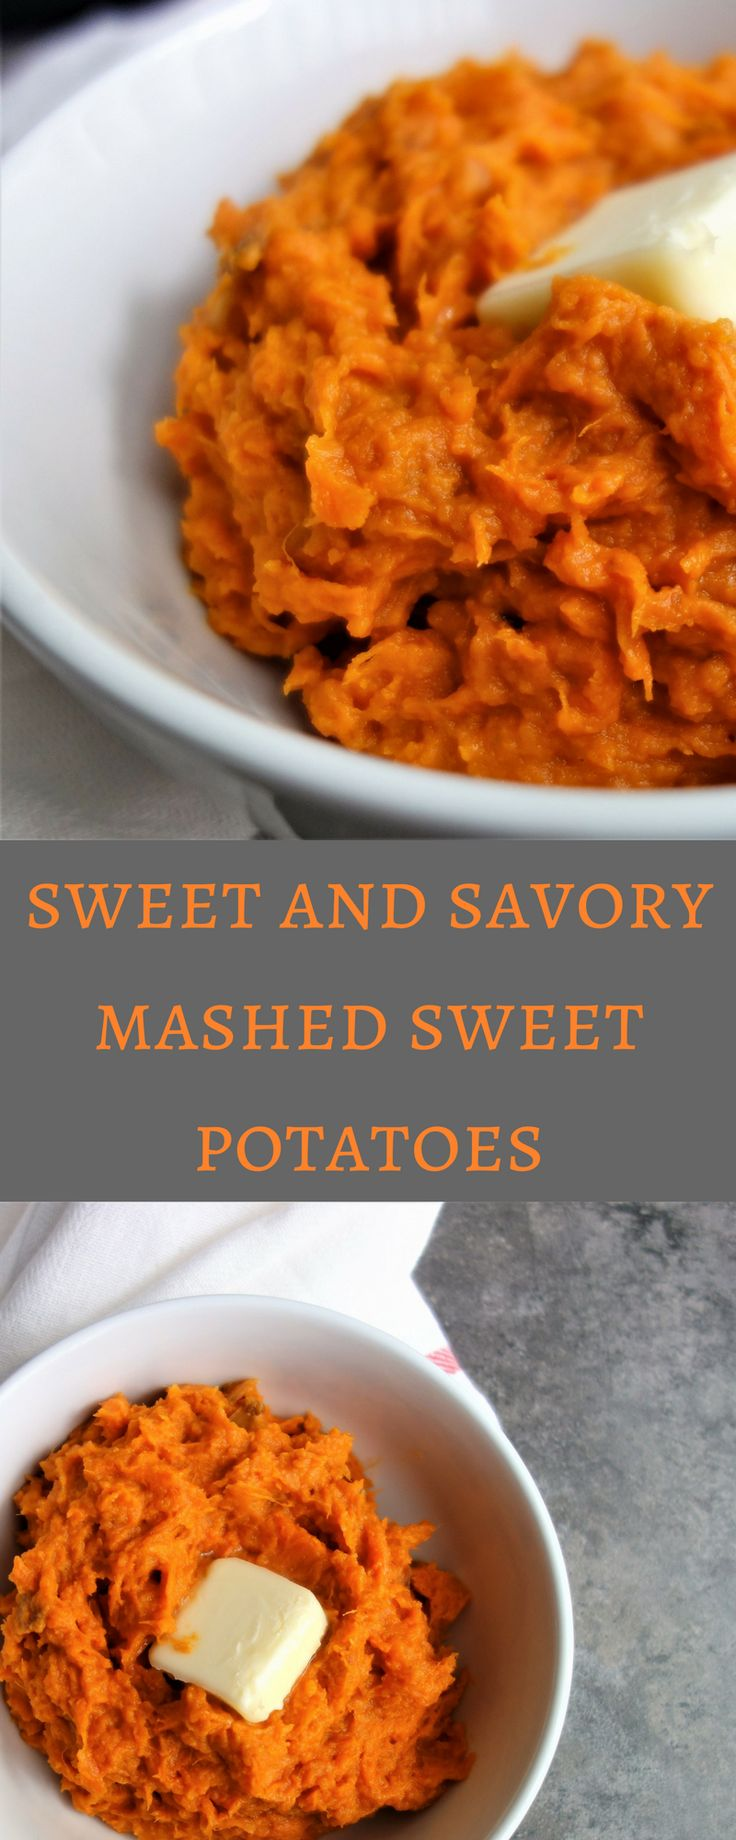 The Most Amazing Sweet and Savory Mashed Sweet Potatoes. sweet potato recipe, mashed sweet potato recipe, sweet potatoes easy, healthy recipes, southern, brown sugar, sweet mashed potato recipe, thanksgiving recipes, holiday recipes, make ahead sweet potatoes, easy sweet potato recipe